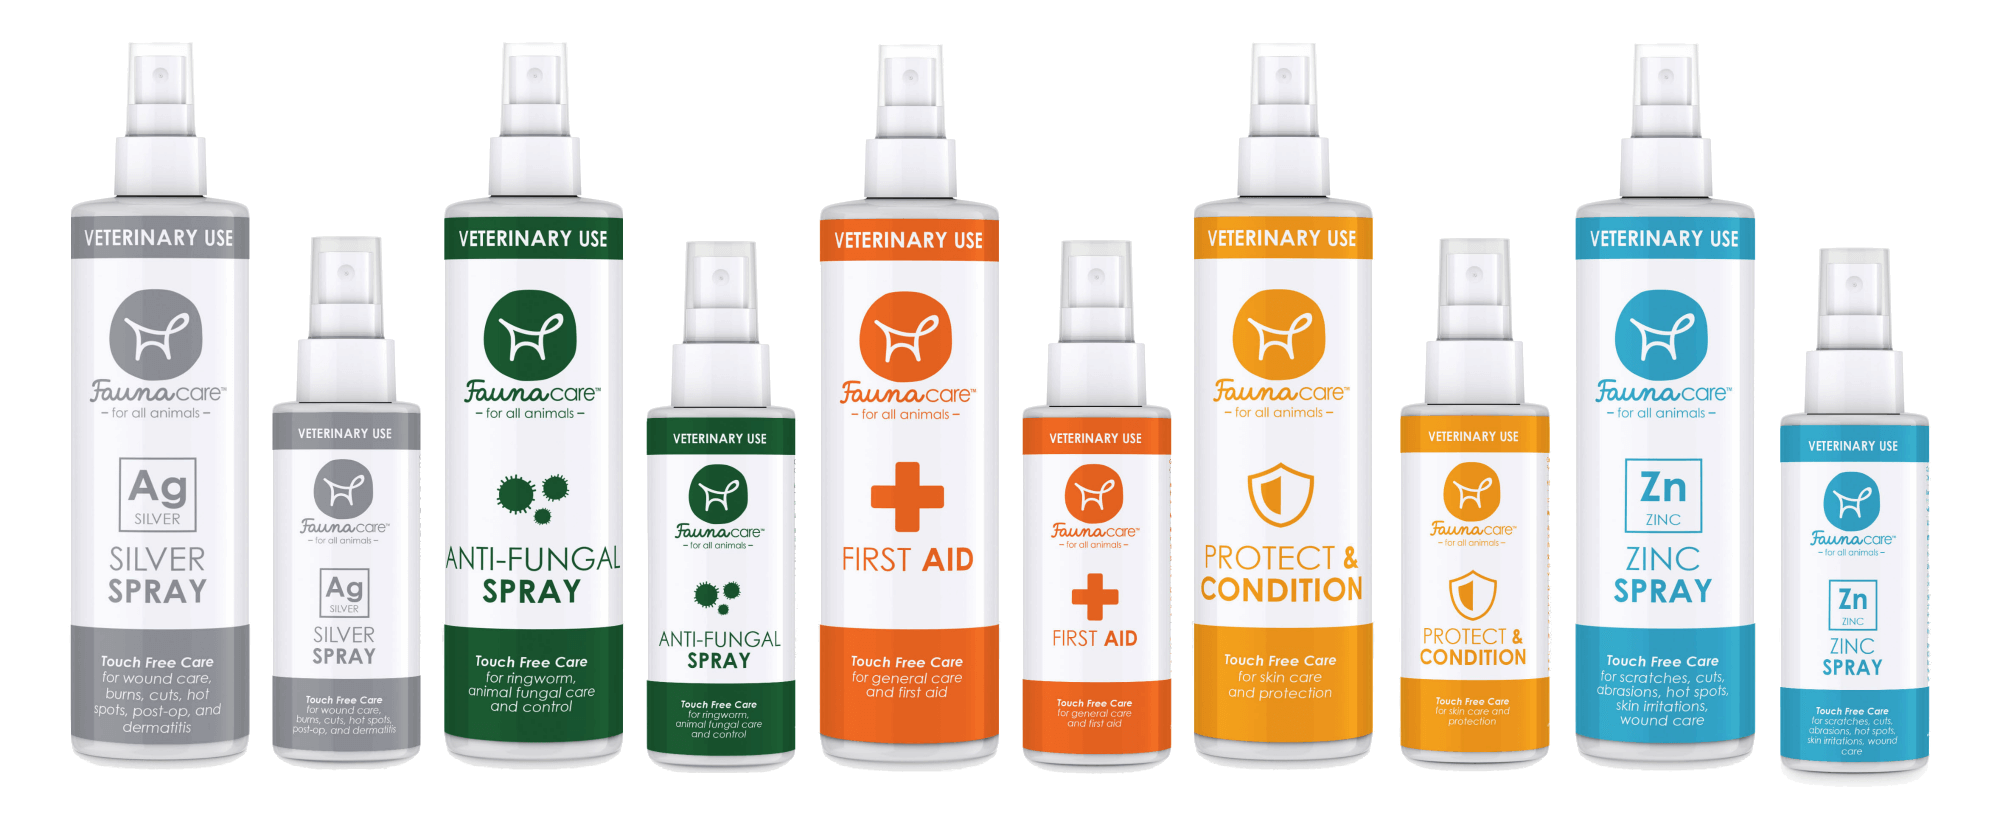 Fauna Care Veterinary Sprays